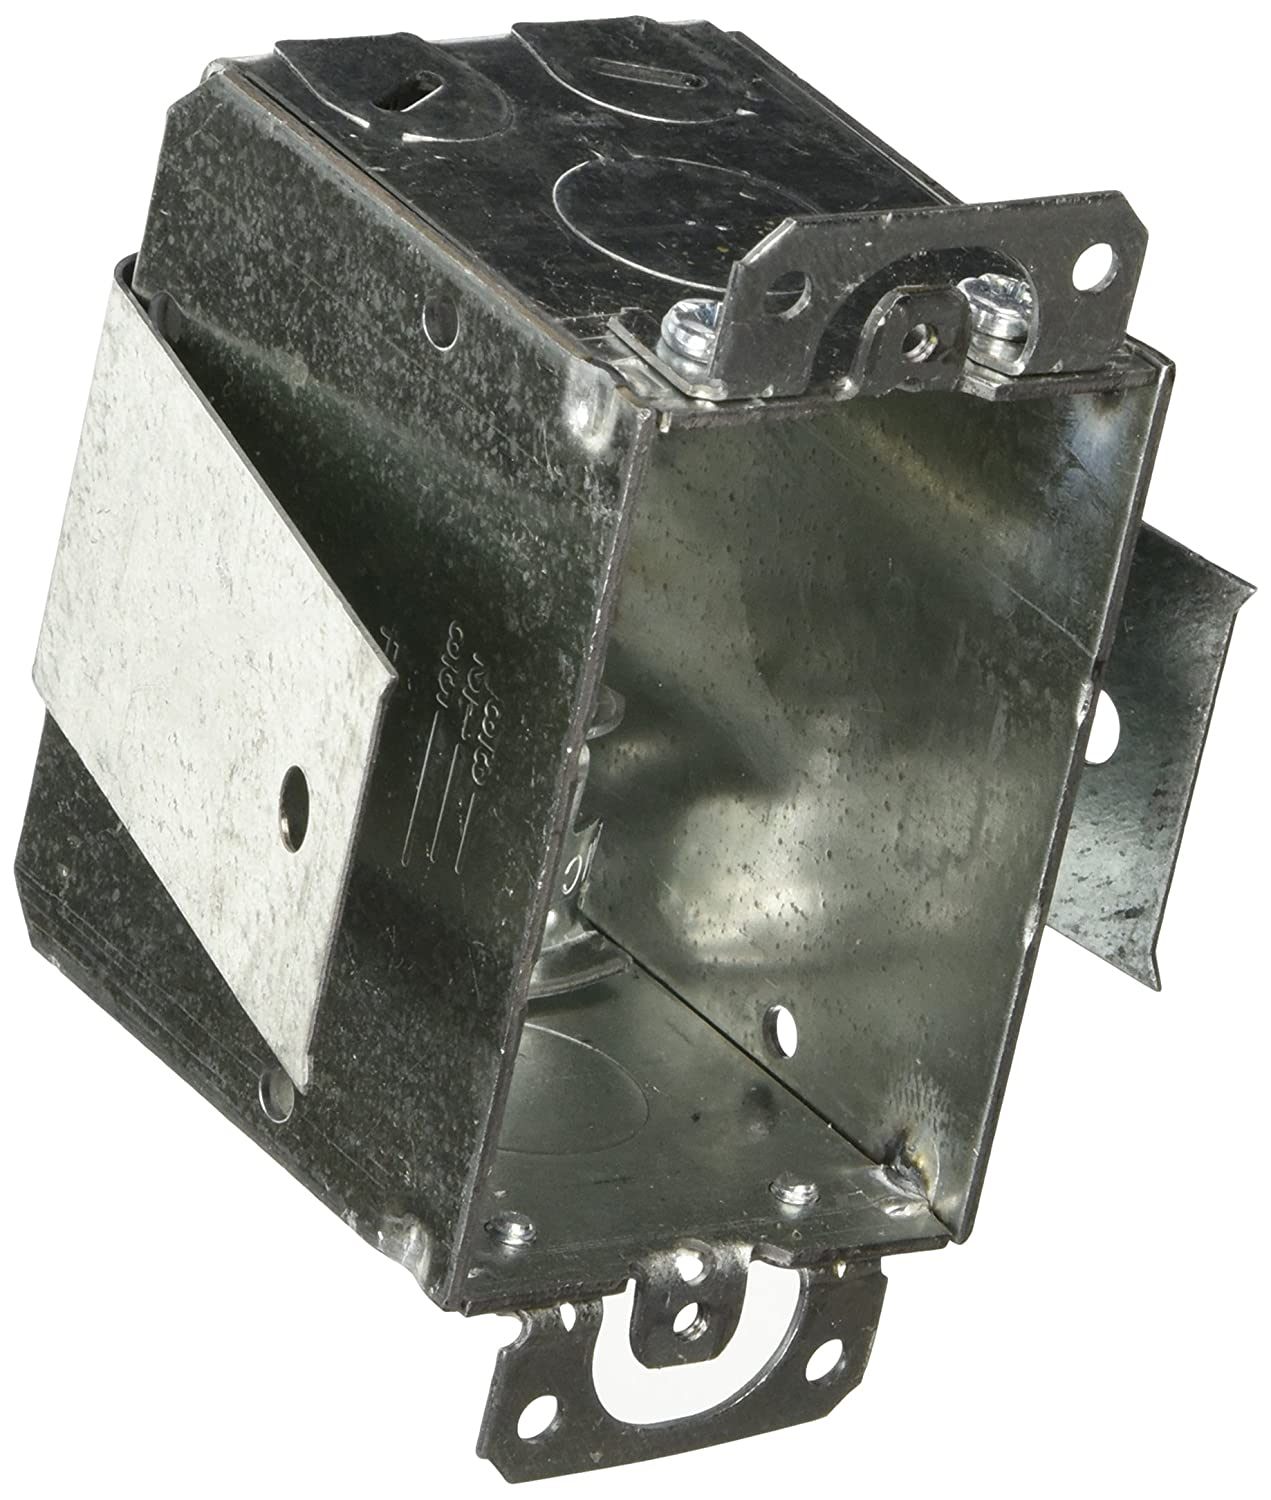 3-Inch x 2-Inch 4 Hubbell-Raco 526 Old Work Saddle 2-1//2-Inch Deep Switch Electrical Box Welded with Plaster Ears, MC//BX//Flex Cable Clamps